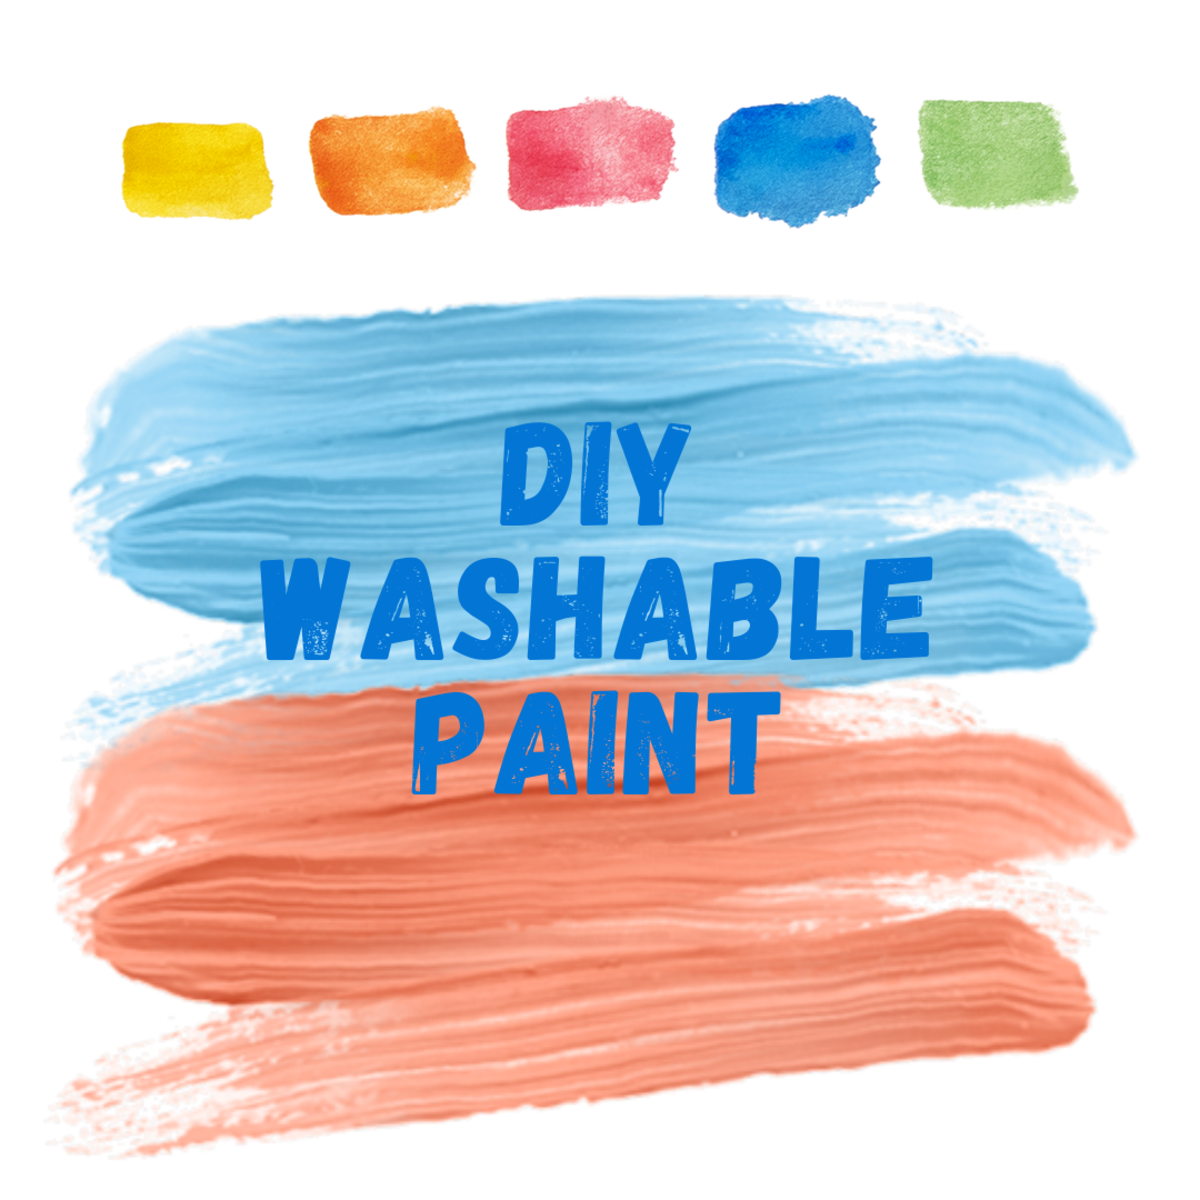 Learn how to make your own washable paint—perfect for kids!